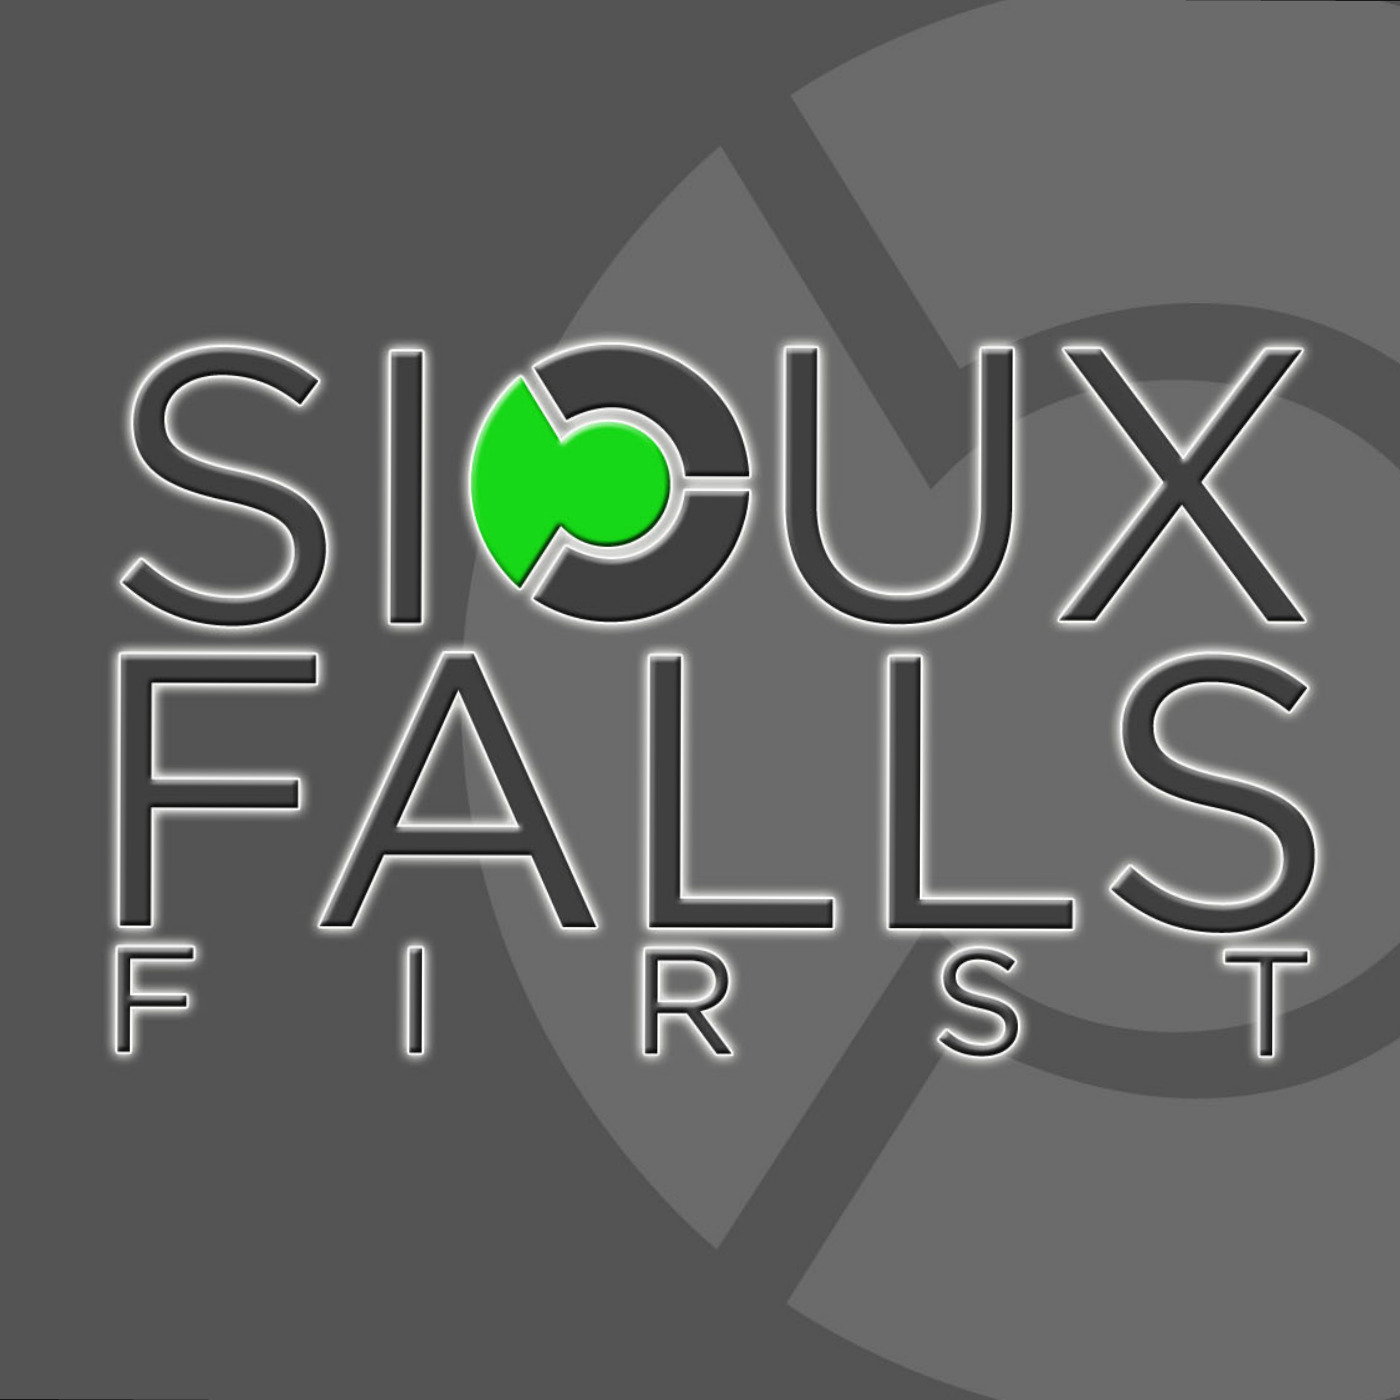 Sioux Falls First: Video